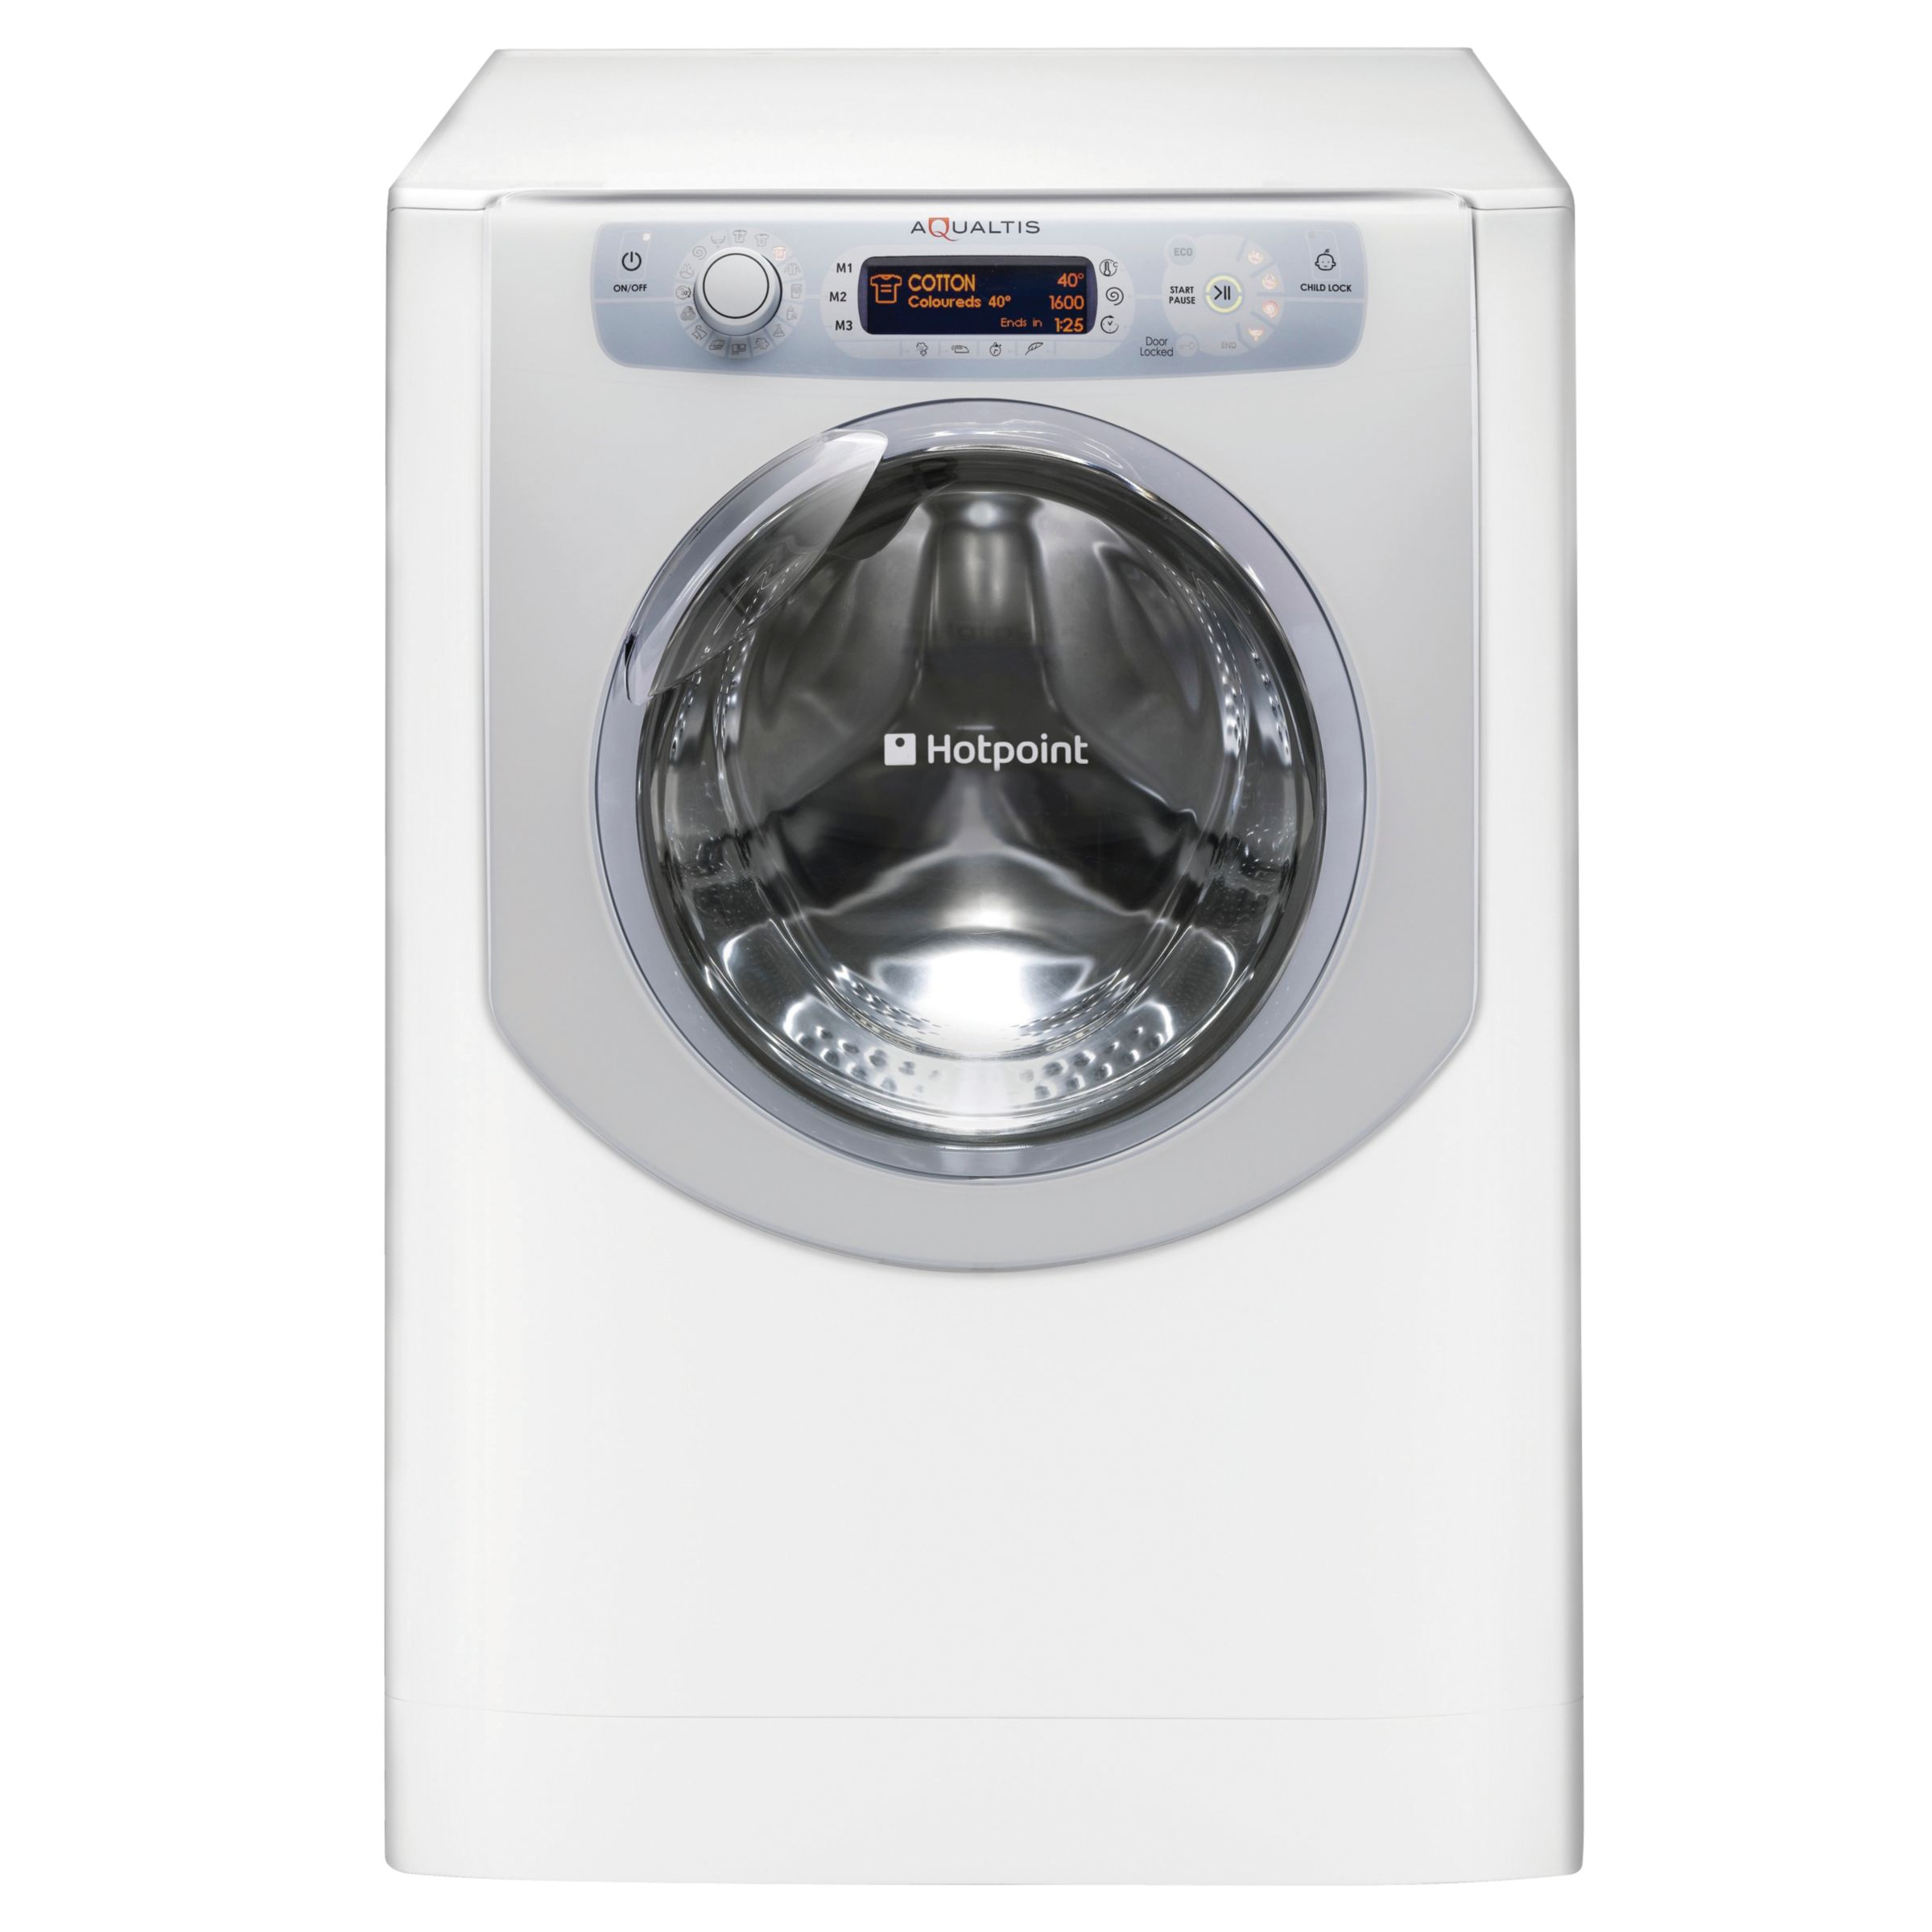 Hotpoint Aqualtis AQ9D692IV Washing Machine, White